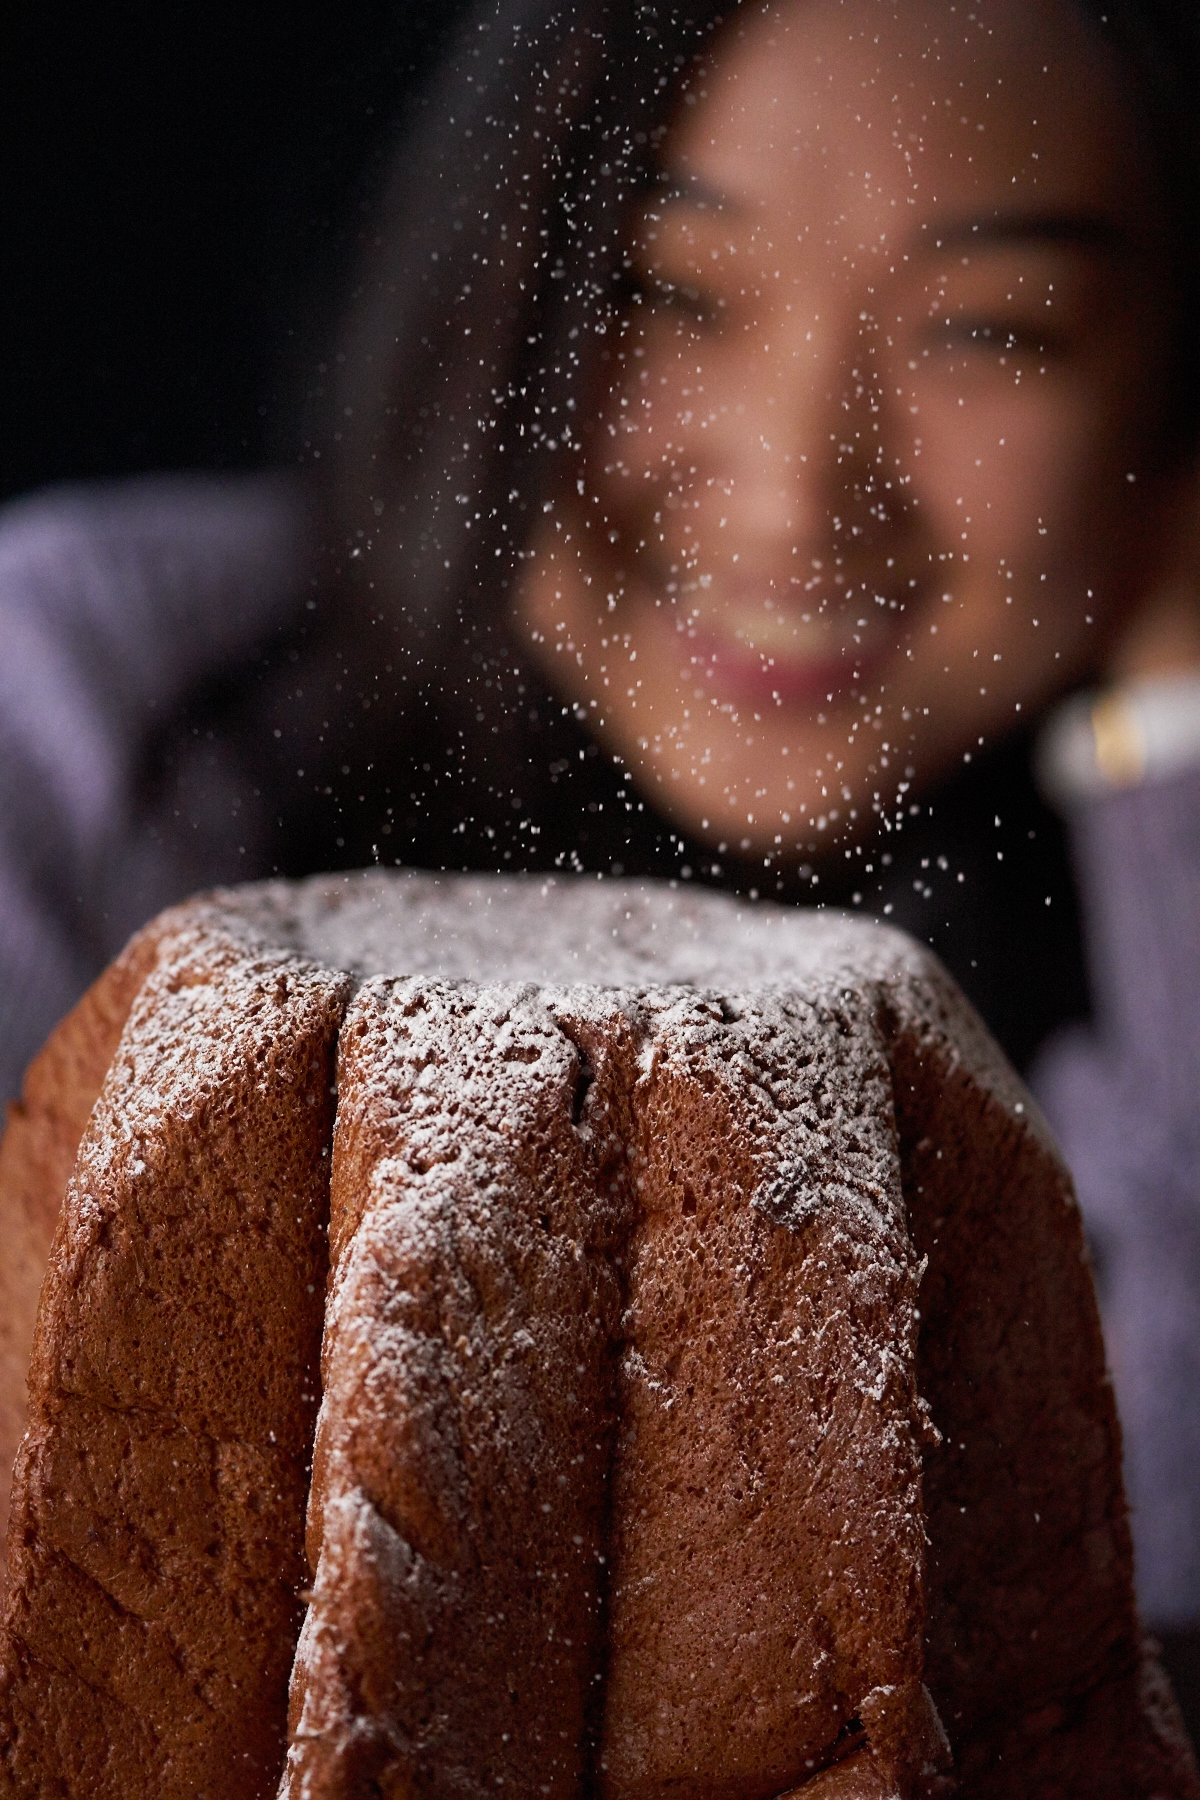 Our Digital Retoucher, Sasha, indulges in the Italian sweet bread, Pandoro. The treat is dusted with powdered sugar, which made us wish for snow.